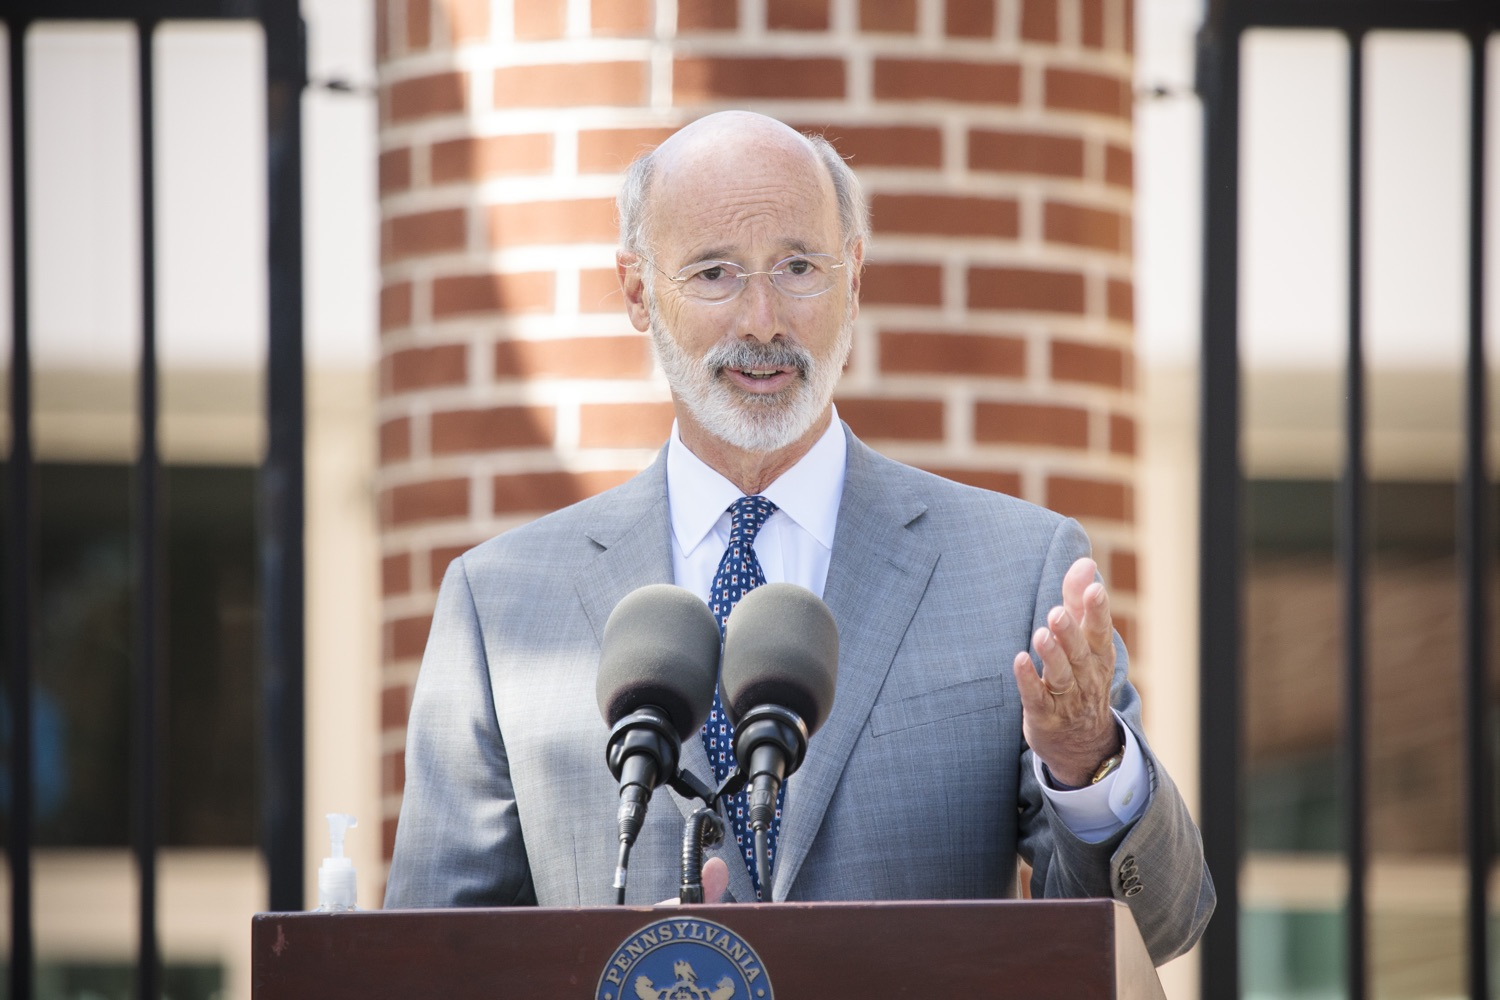 "<a href=""https://filesource.wostreaming.net/commonwealthofpa/photo/18306_gov_aca_dz_006.jpg"" target=""_blank"">⇣ Download Photo<br></a>Pennsylvania Governor Tom Wolf speaking with the press.  Governor Tom Wolf today amplified his call to protect the ACA and provide health care for all amid threats as the US Senate Judiciary Committee hearings to confirm conservative Judge Amy Coney Barrett to the Supreme Court begin next week and the pandemic ramps up across the country. York, PA  October 8, 2020"